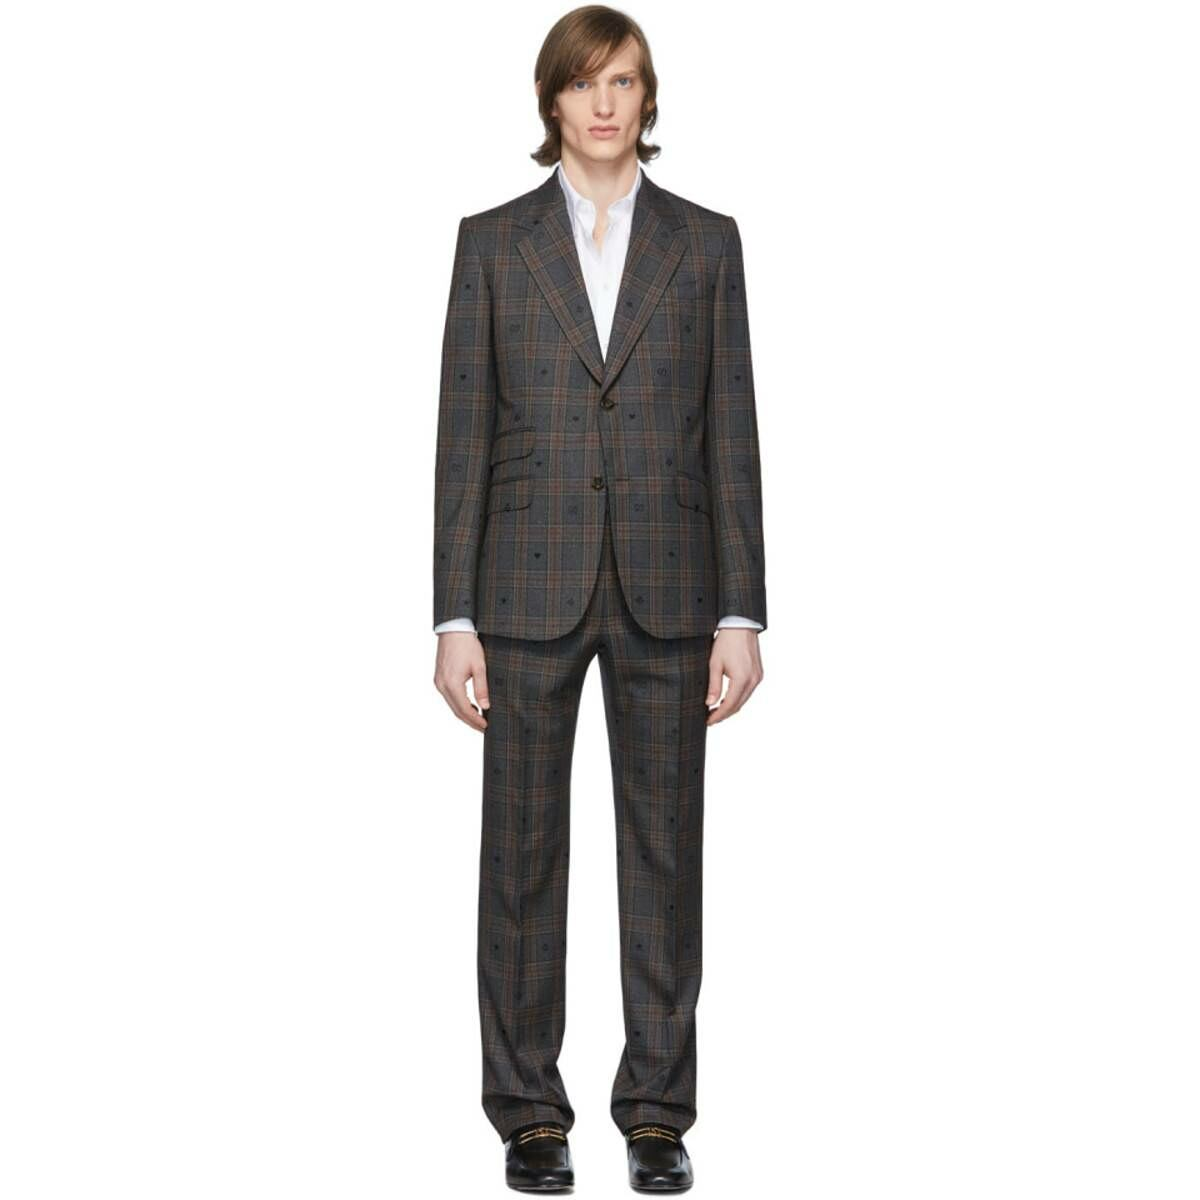 Gucci Grey and Red Bees and Hearts Suit Ssense USA MEN Men FASHION Mens SUITS